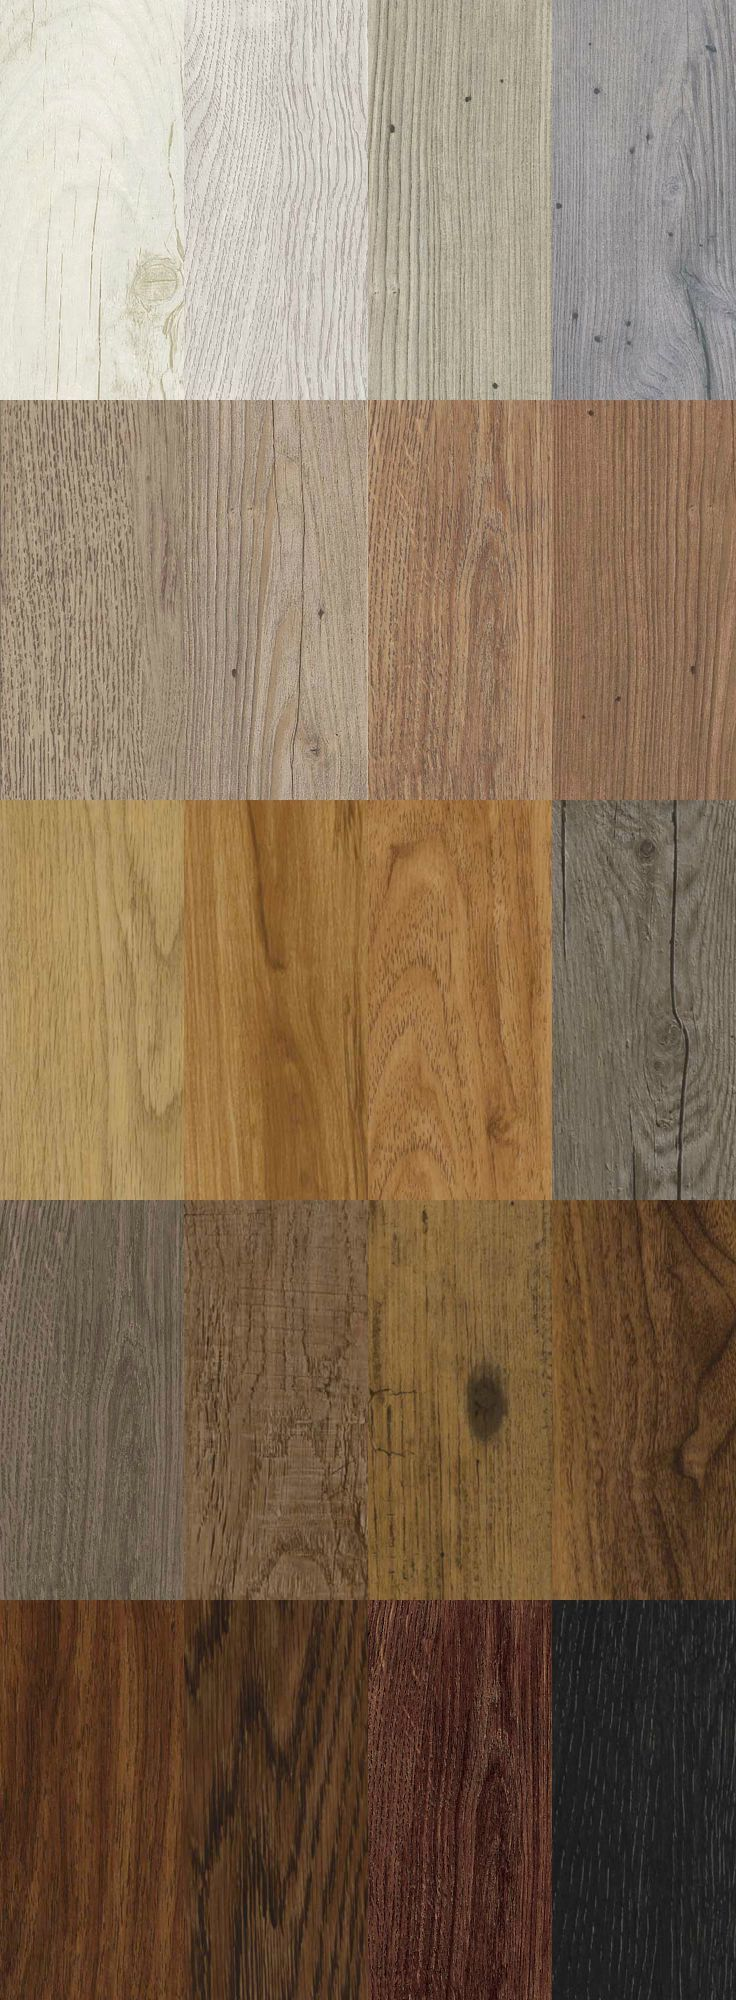 We have 20 different types of sumptuous wood effect flooring! The fine grain detail and texture makes it feel just like the natural material. This is not just any flooring - these are luxury vinyl tiles. Repin if you love this image.